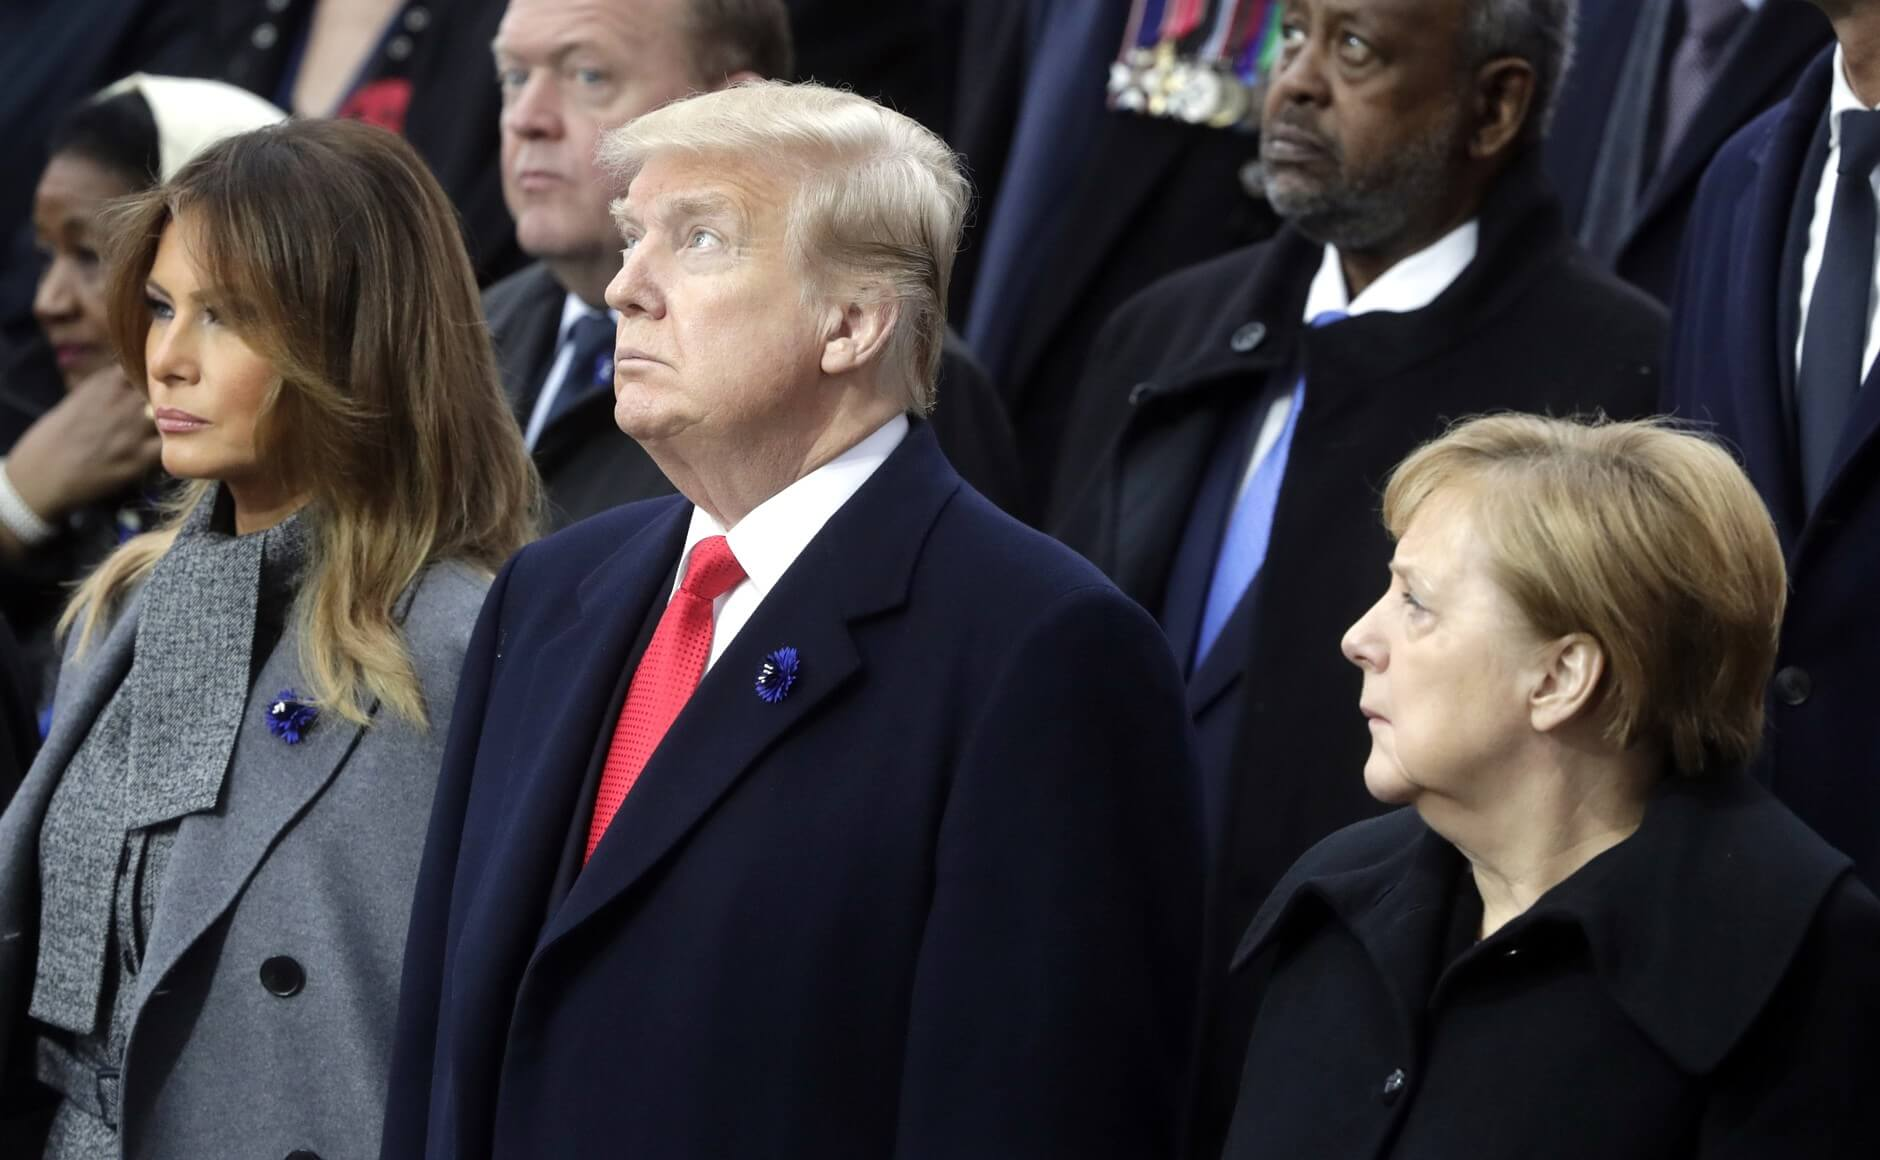 Frohlich-President of the United States of America Donald Trump and First Lady Melania Trump with Federal Chancellor of Germany Angela Merkel at the commemorative ceremony marking the centenary of Armistice Day in November 2018. Wikimedia